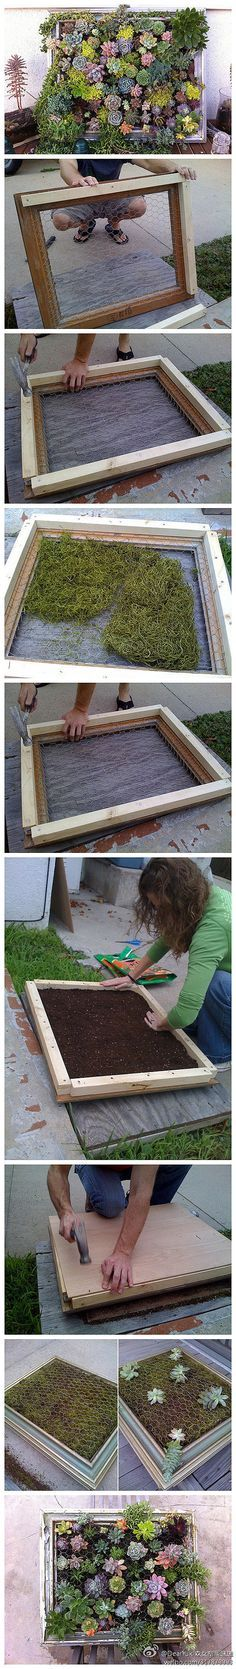 picture frame succulent planter {vertical planters for salad greens & herbs, too}